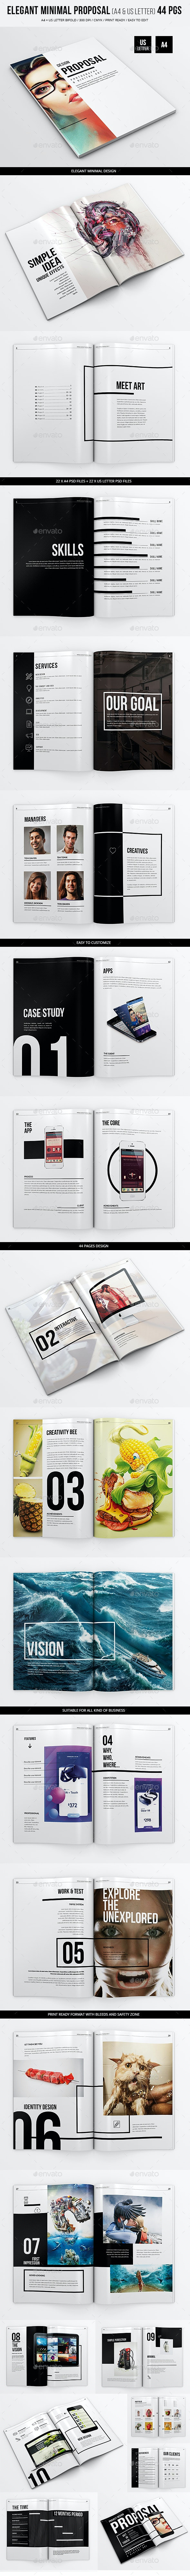 Elegant Minimal Proposal - 44 pgs - A4 and US Letter - Proposals & Invoices Stationery